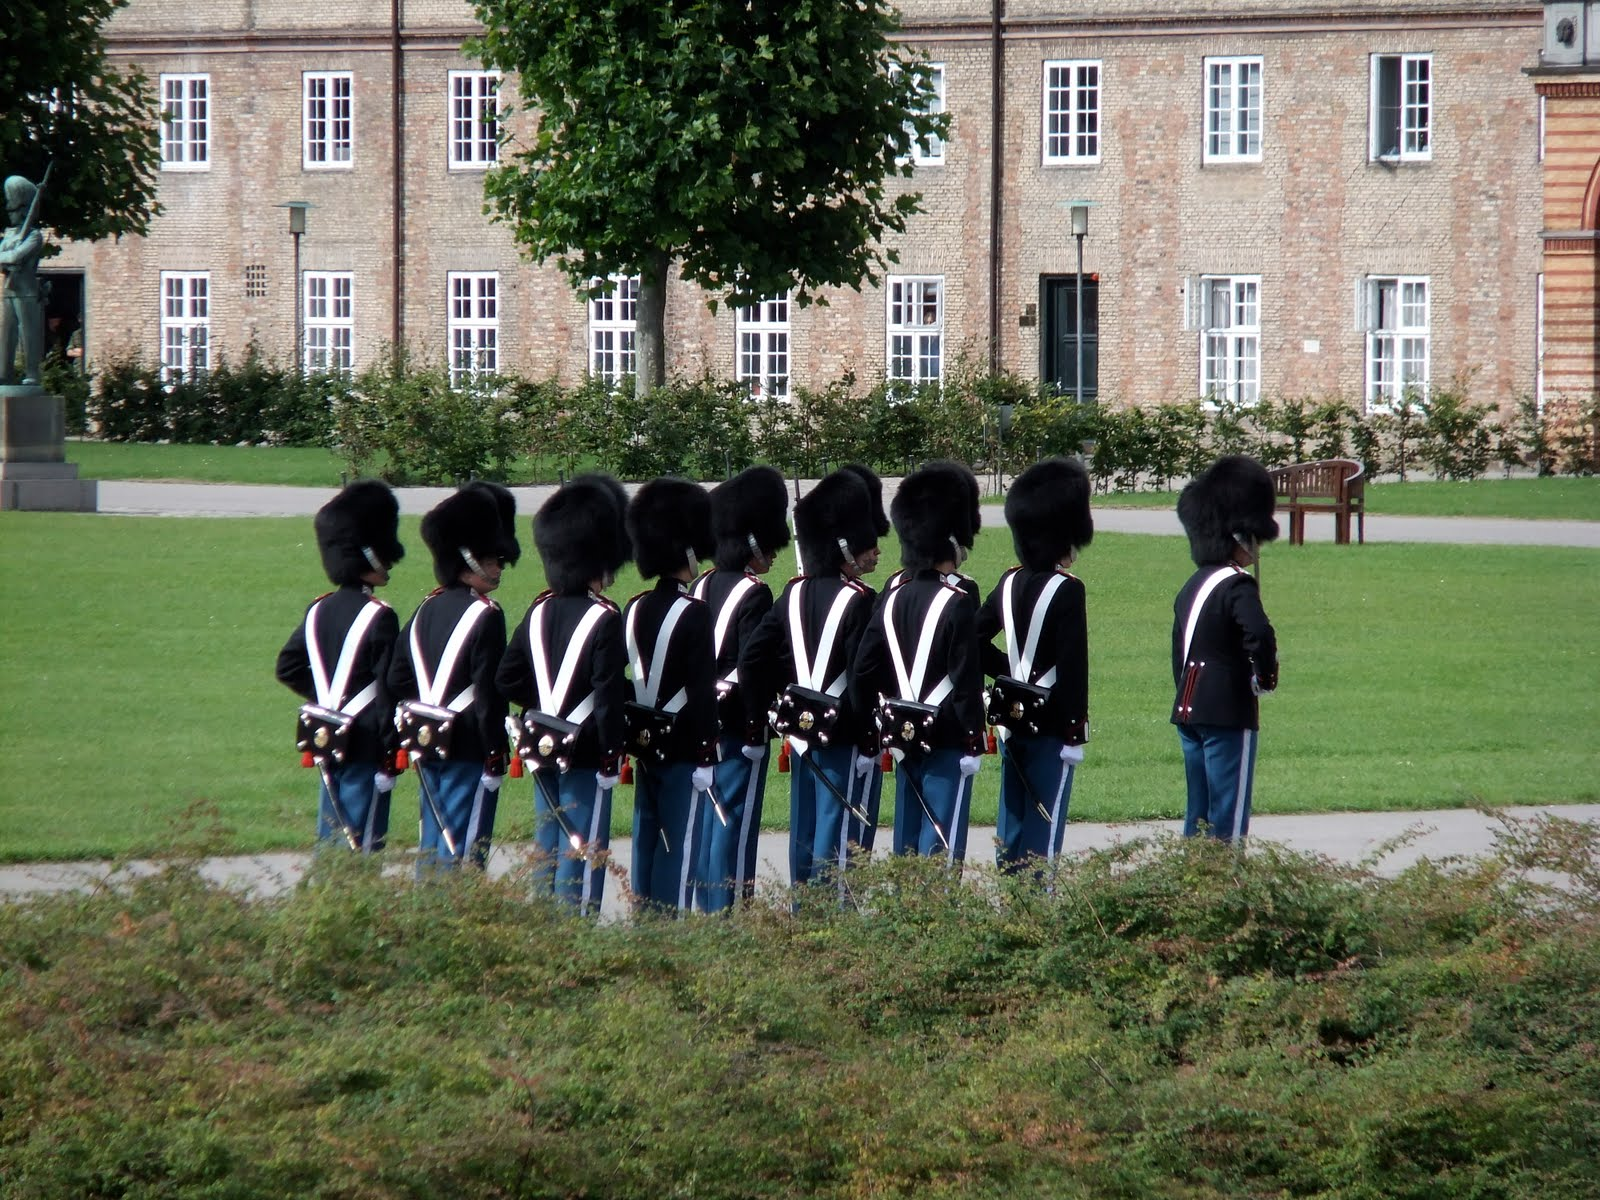 Copenhagen, Denmark, Royal soldiers in Kings Garden